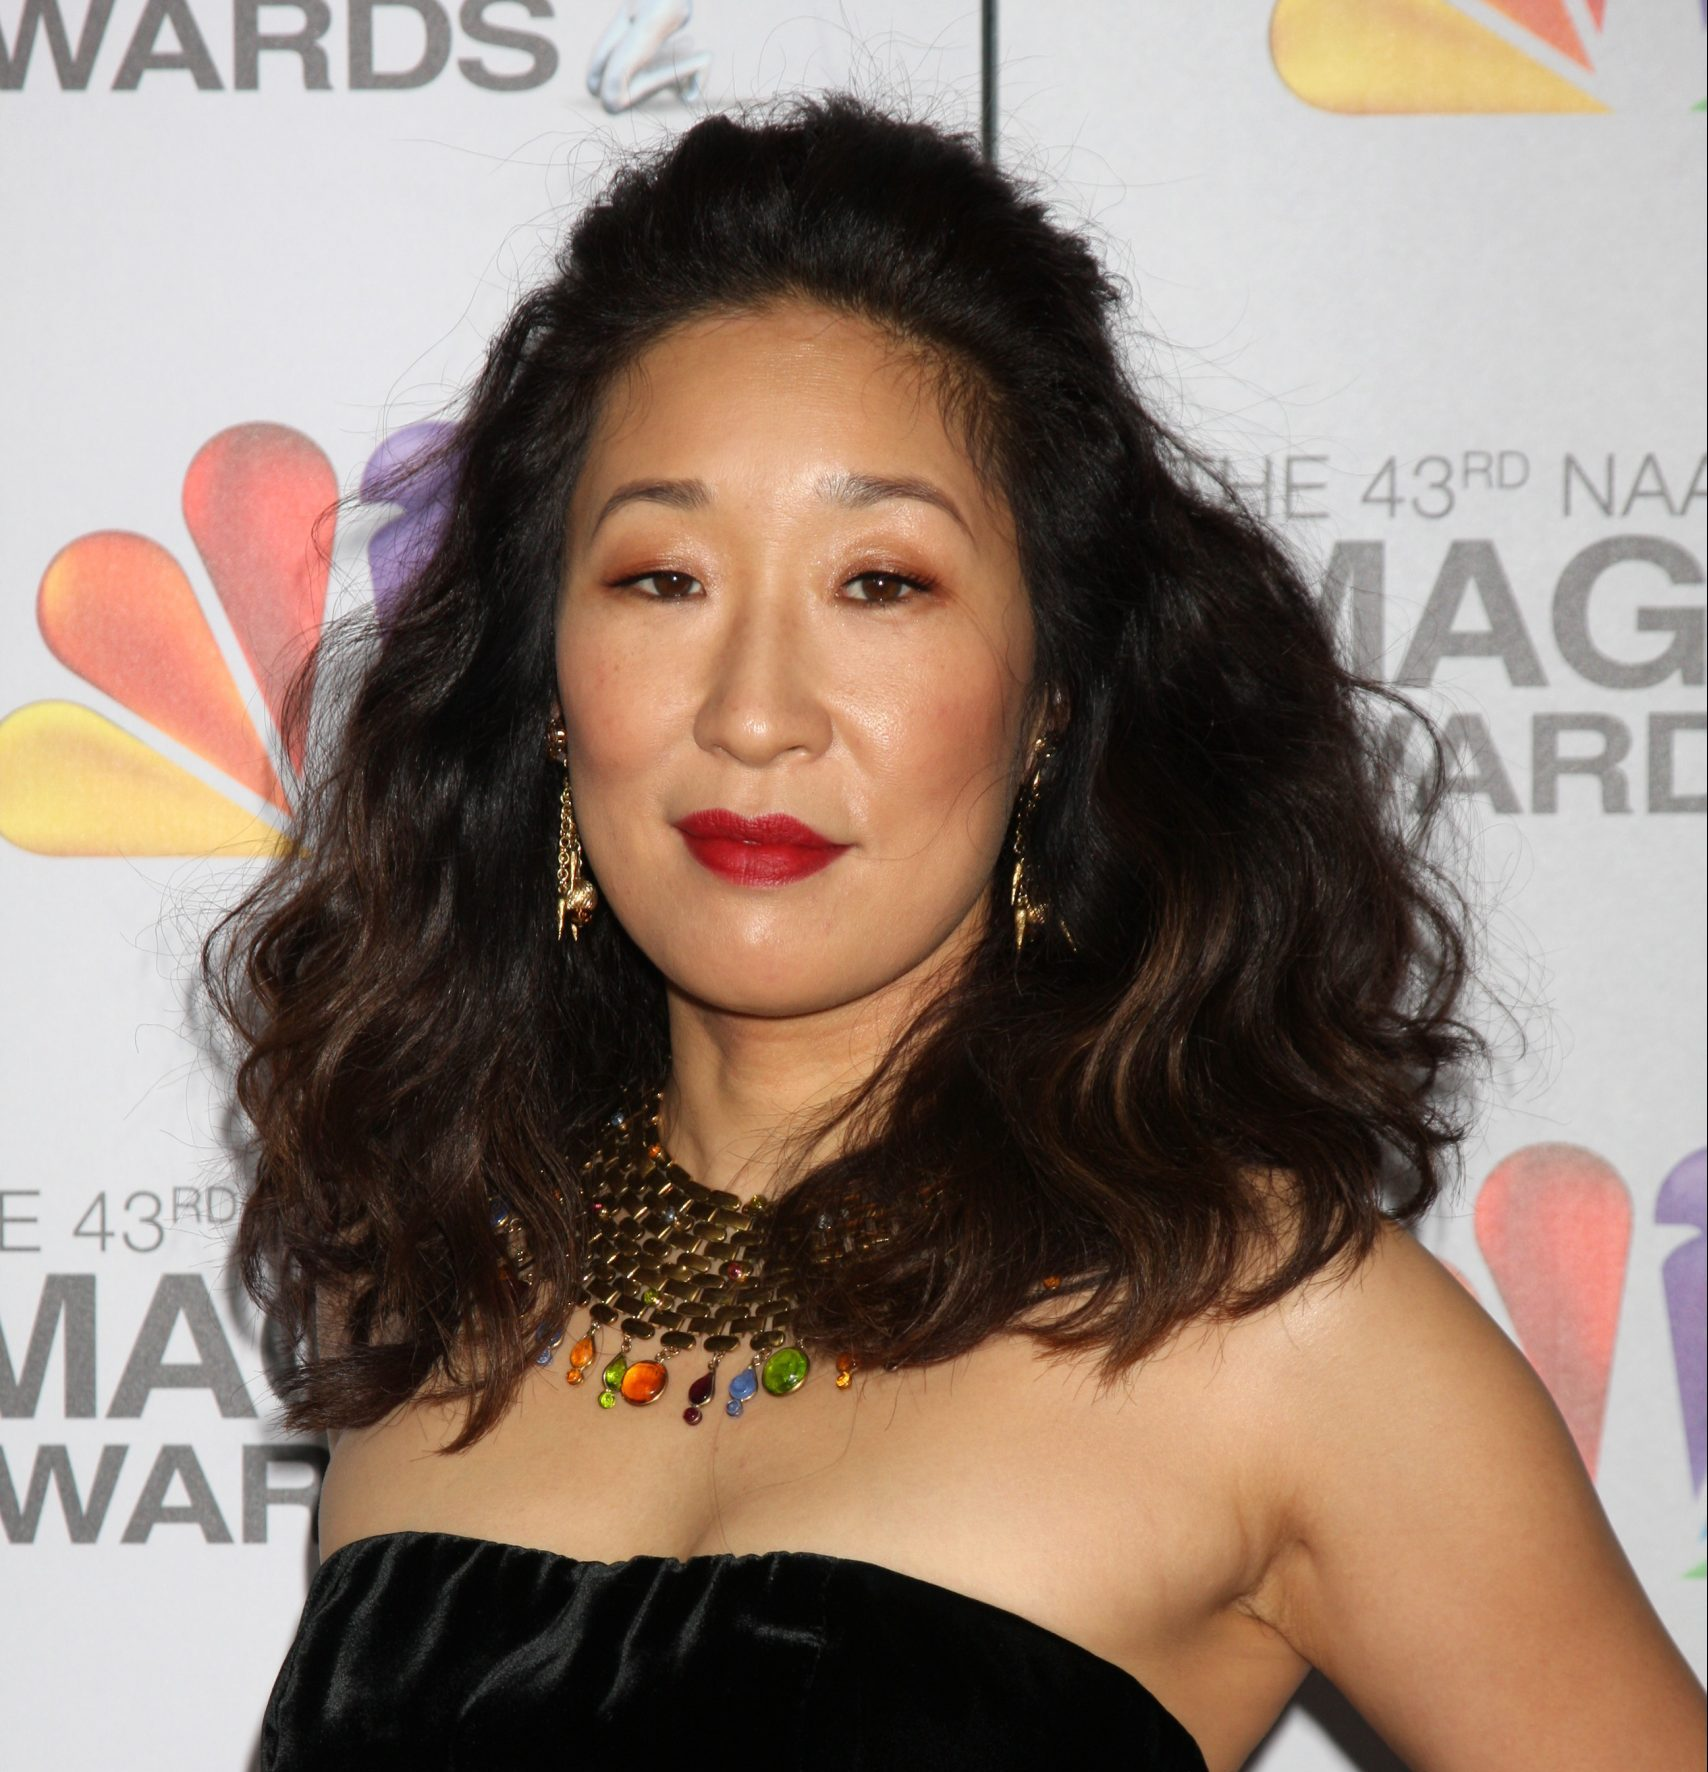 Sandra Oh smiles at a red carpet event. She wears a strapless black dress and a black necklace with colourful stones hanging off it.